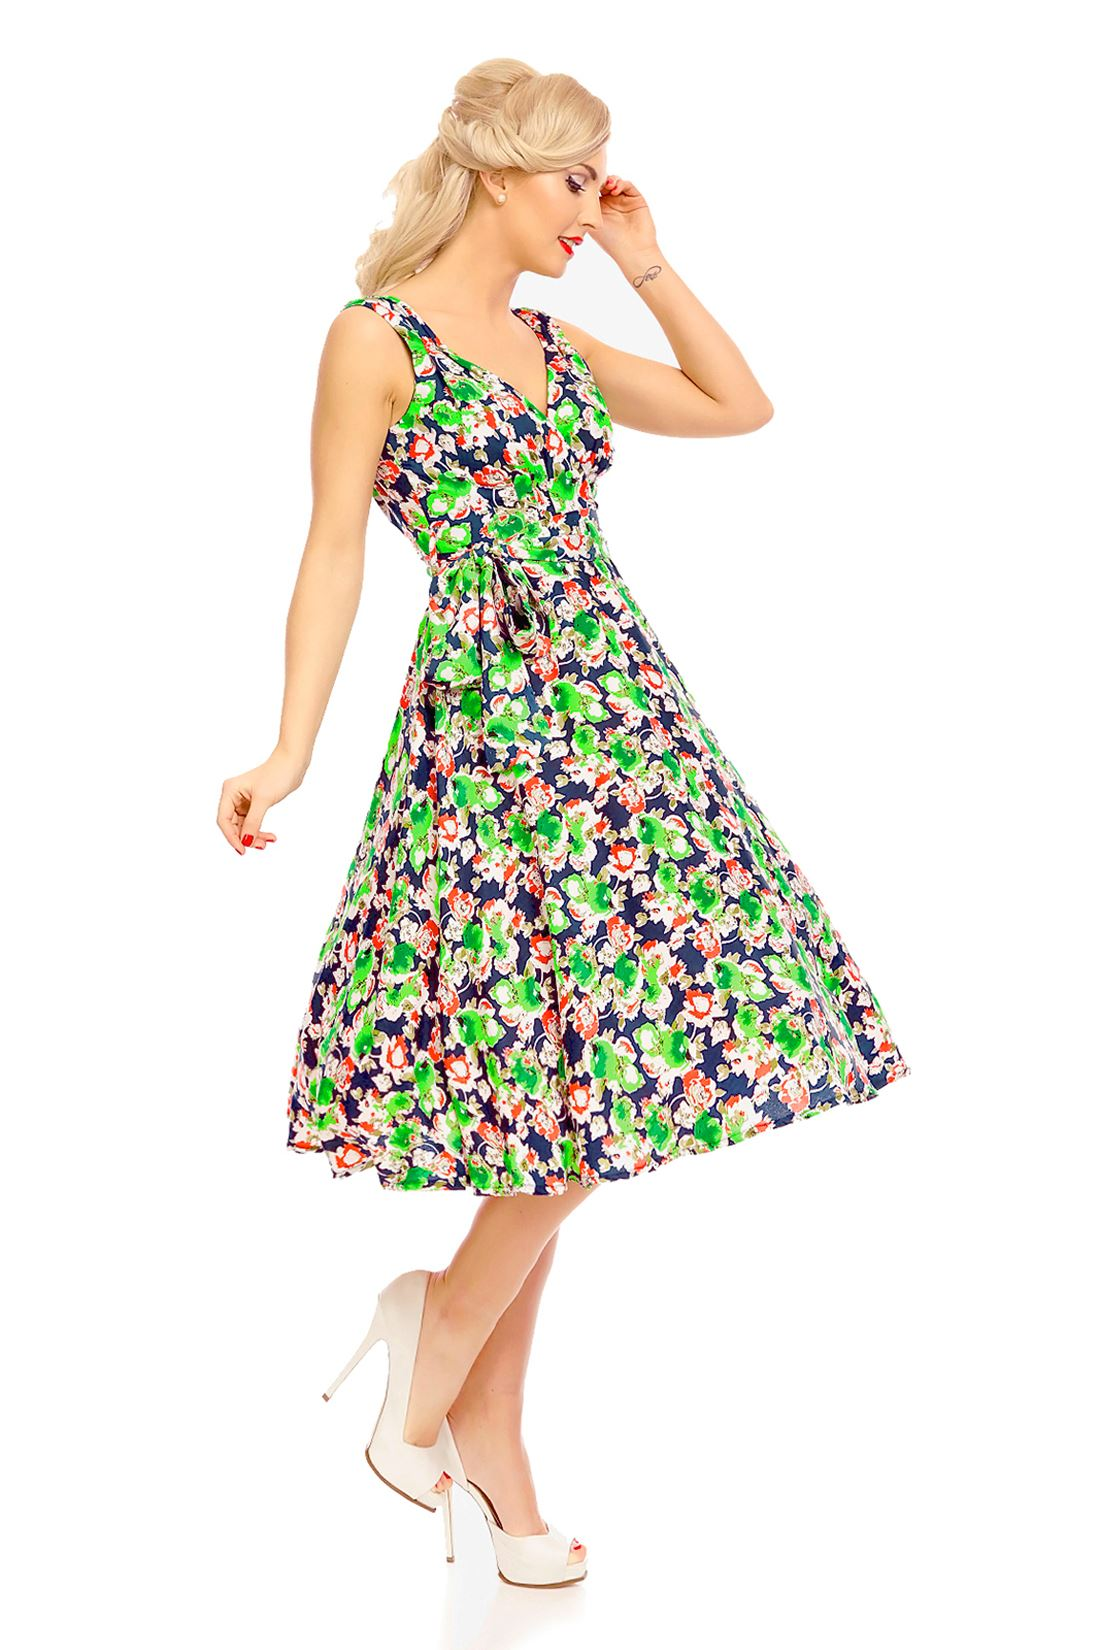 Ladies-Retro-Vintage-Rockabilly-Pin-Up-Swing-Dress-Butterfly-Floral-Dress